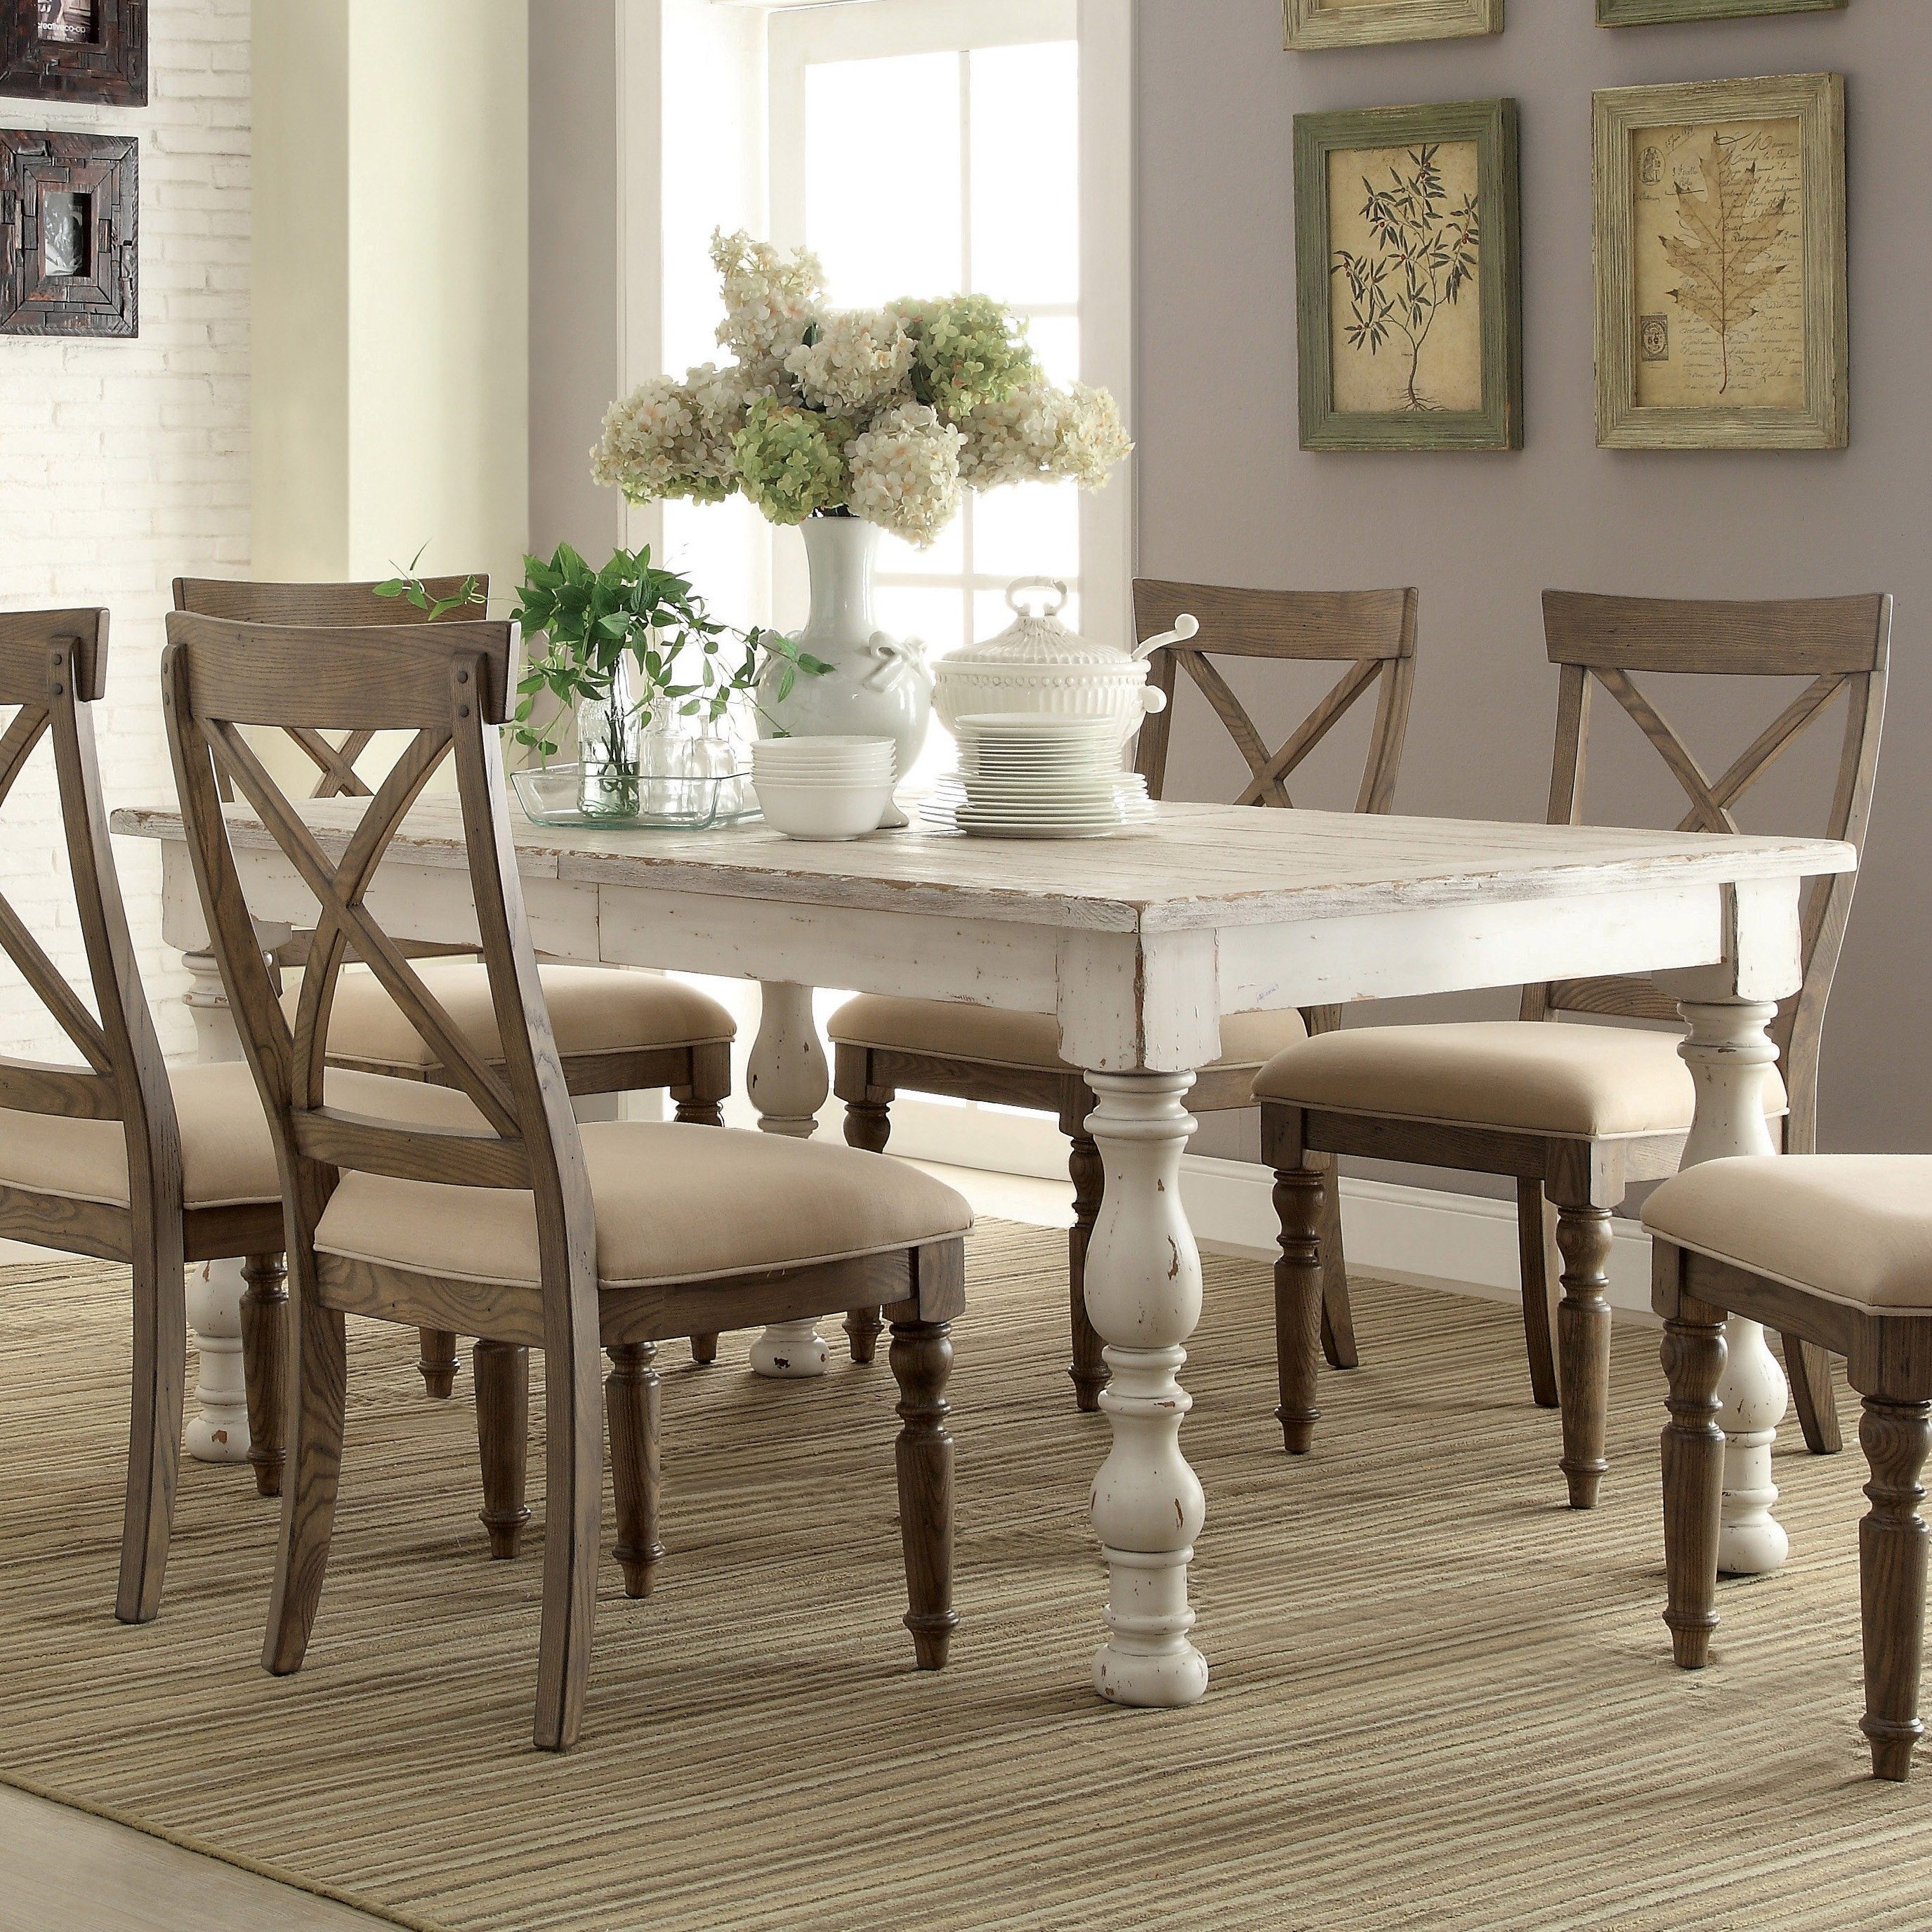 Aberdeen wood rectangular dining table and chairs in for Breakfast table and chairs